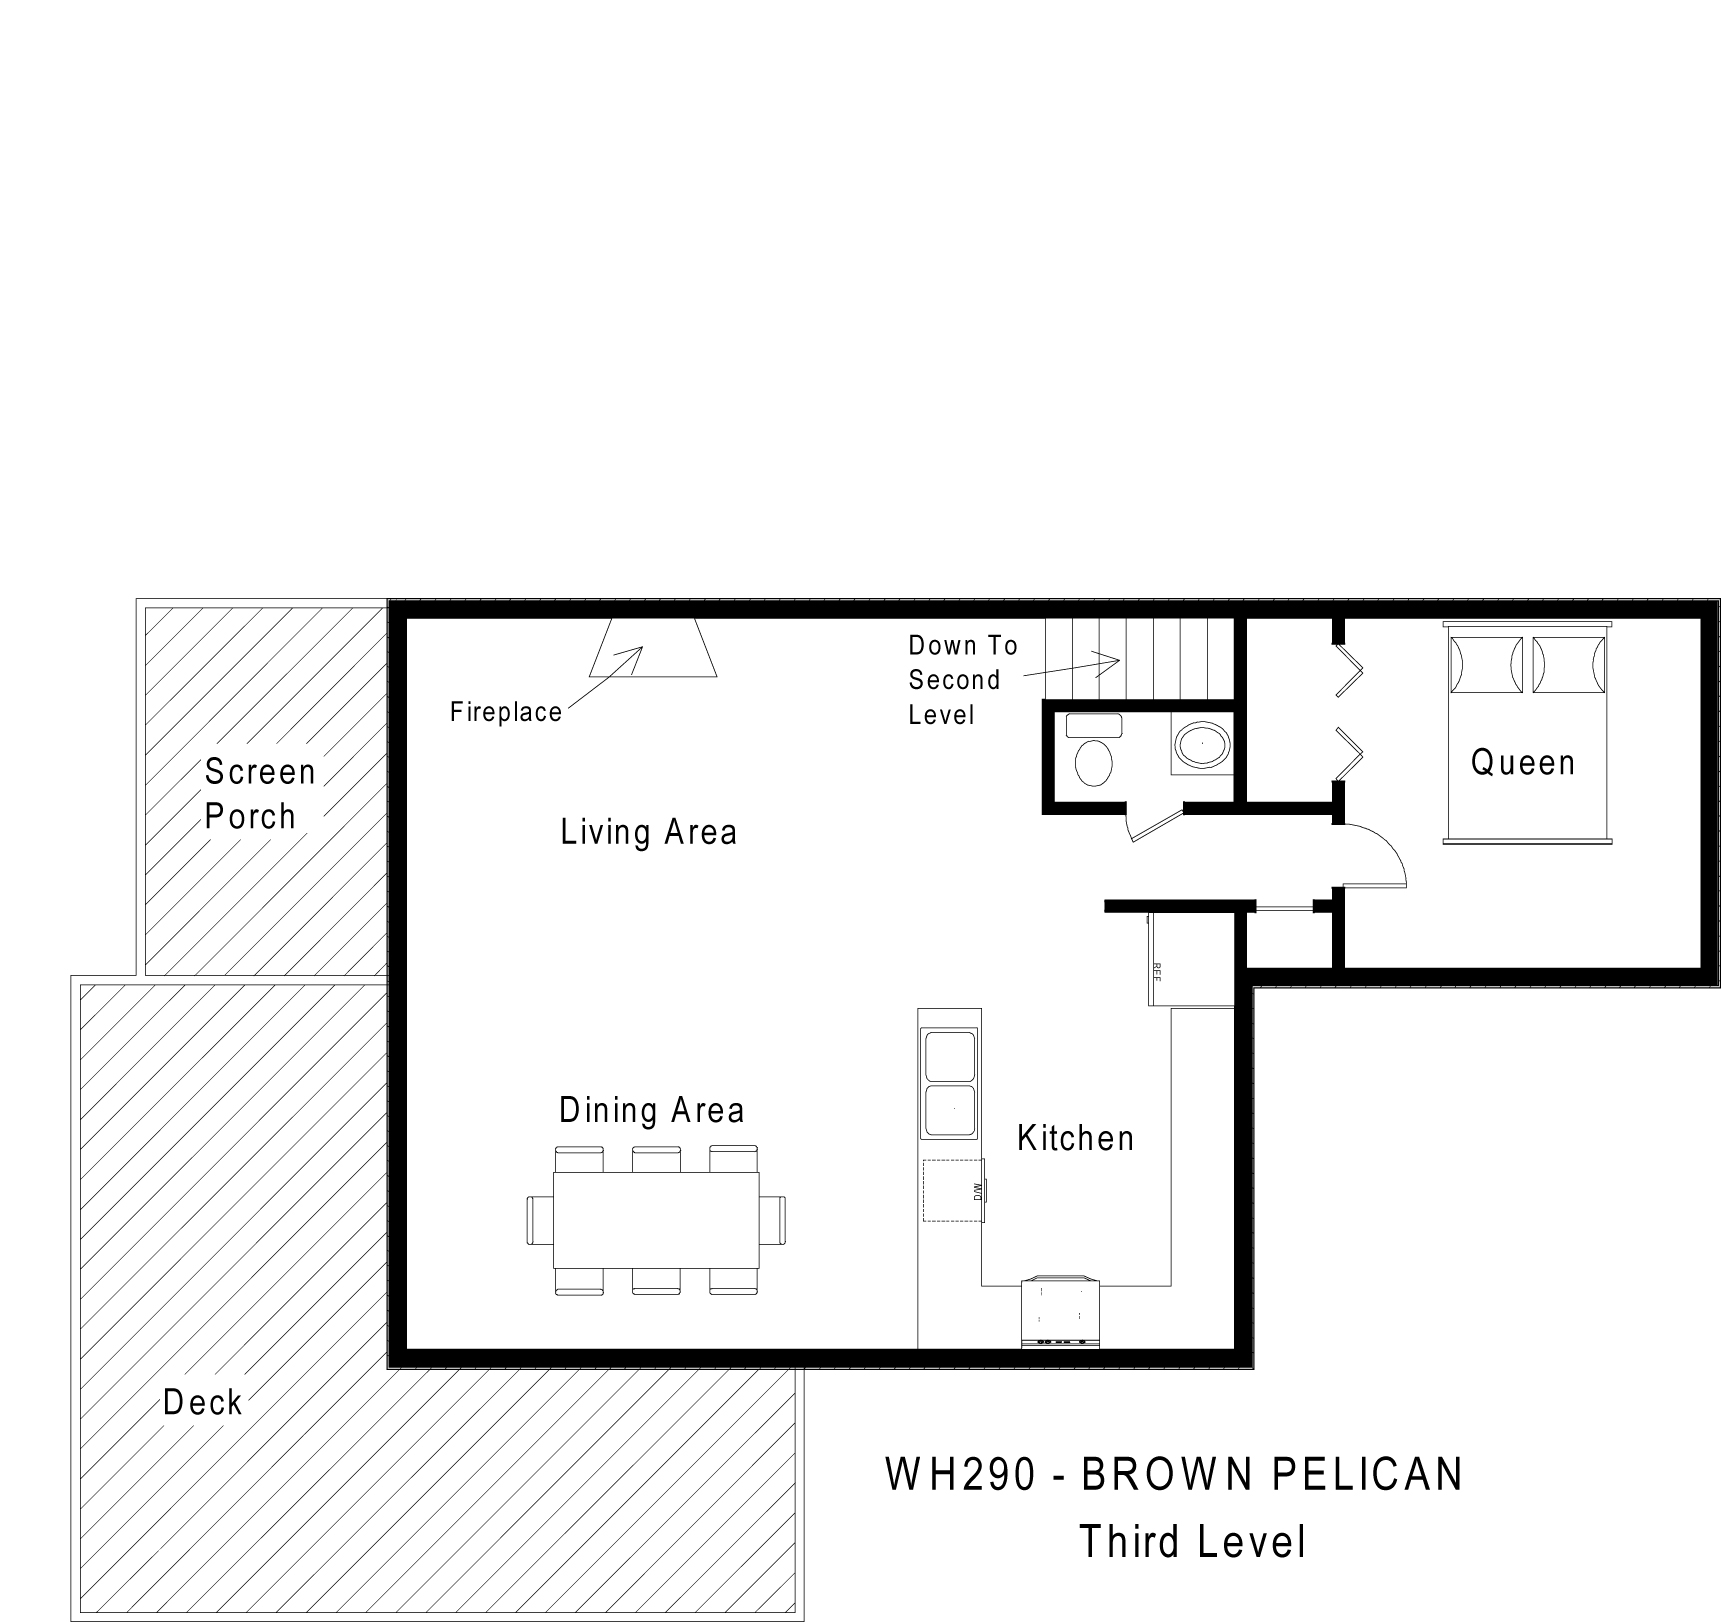 WH029 Brown Pelican - Floorplan Level 3